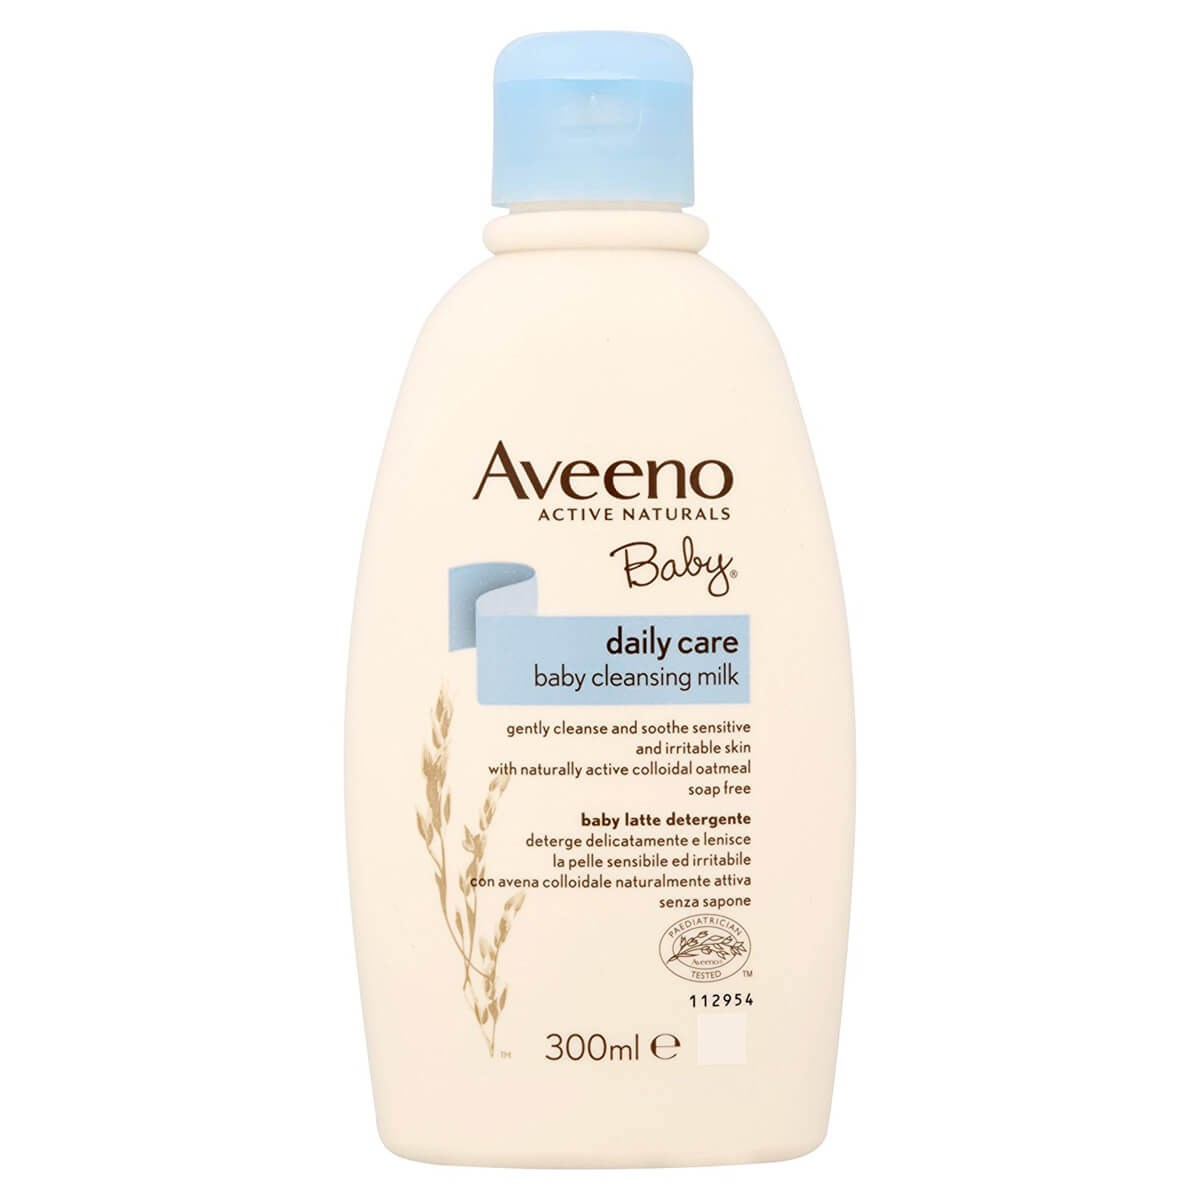 Aveeno Baby Daily Care Baby Cleansing Milk